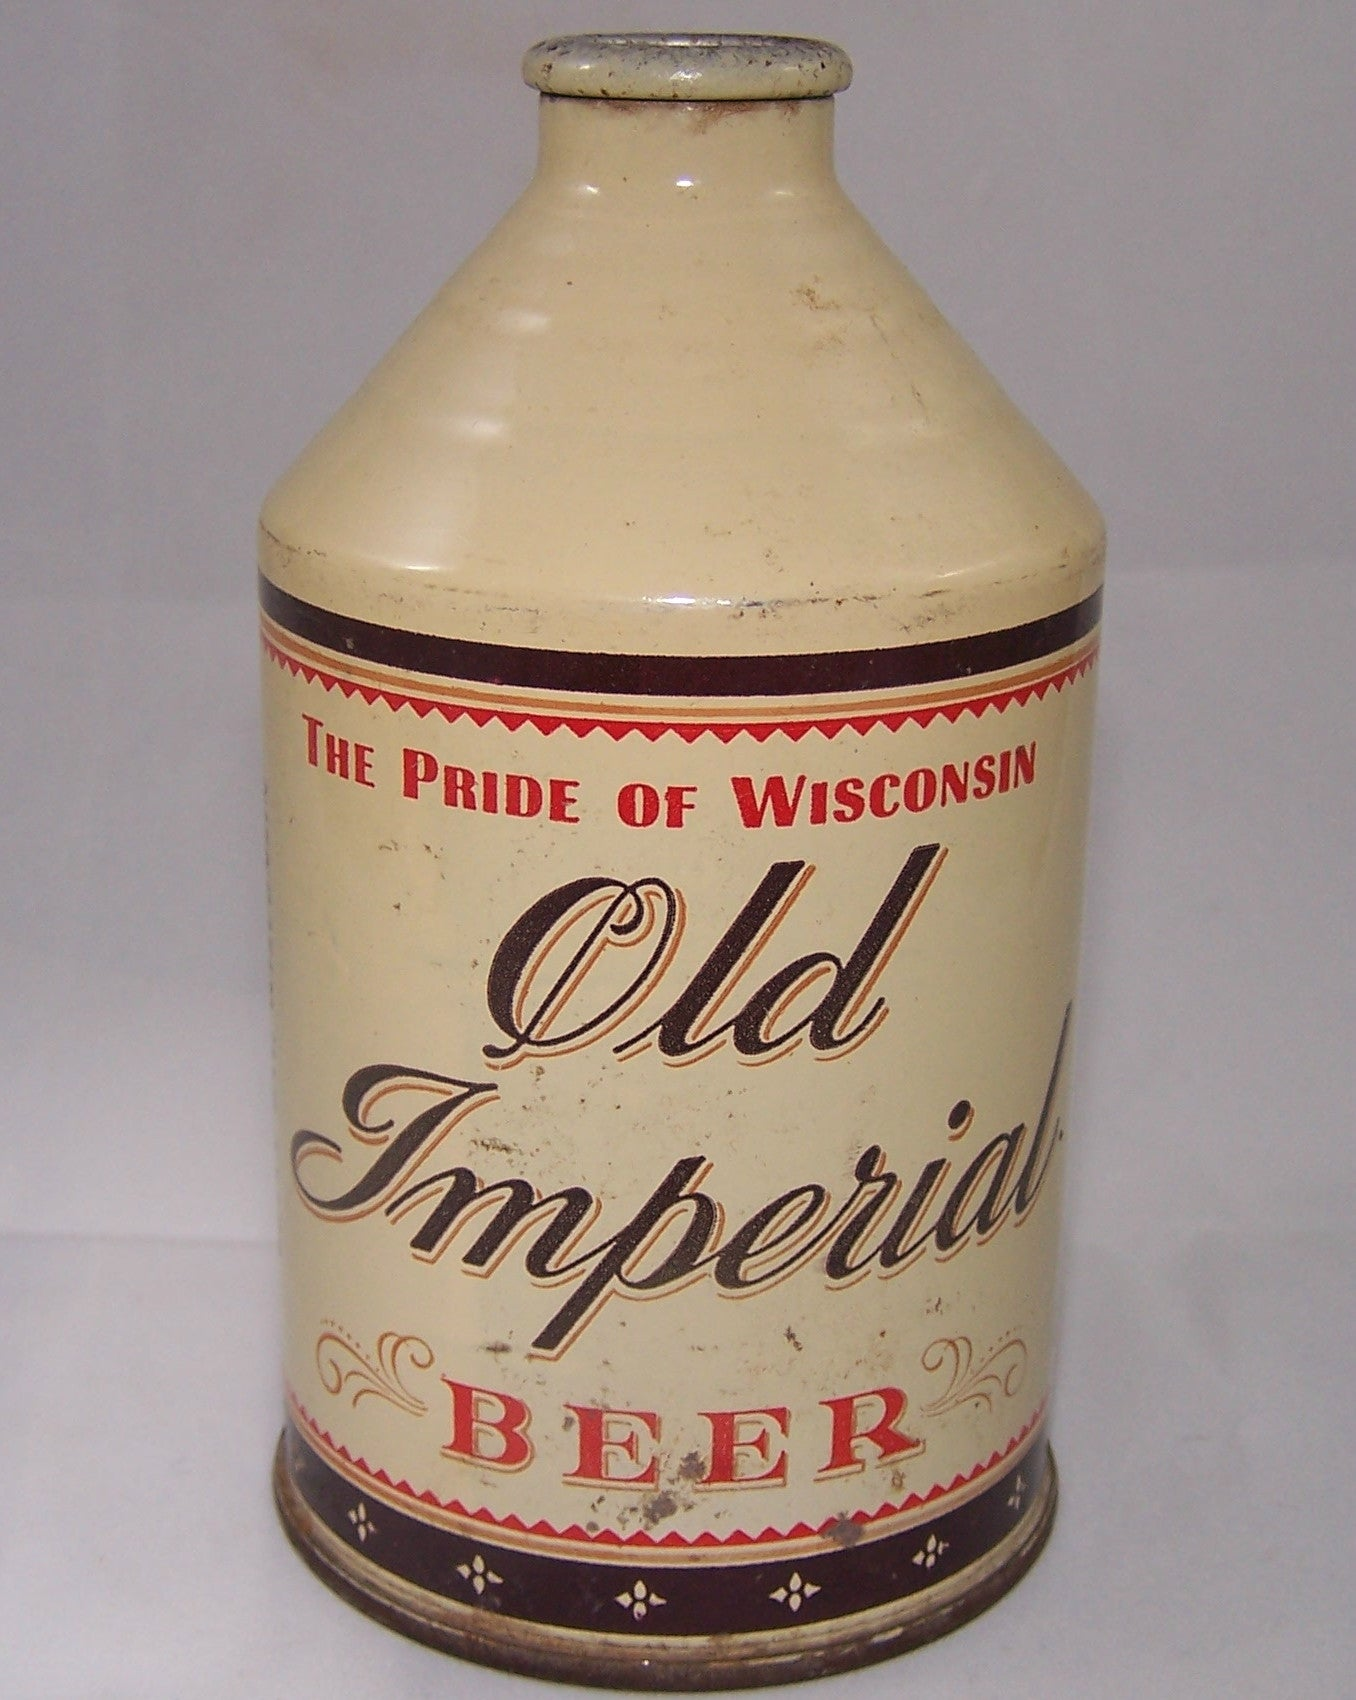 Old Imperial Beer, USBC 197-21, Grade 1/1- Sold 9/3/15